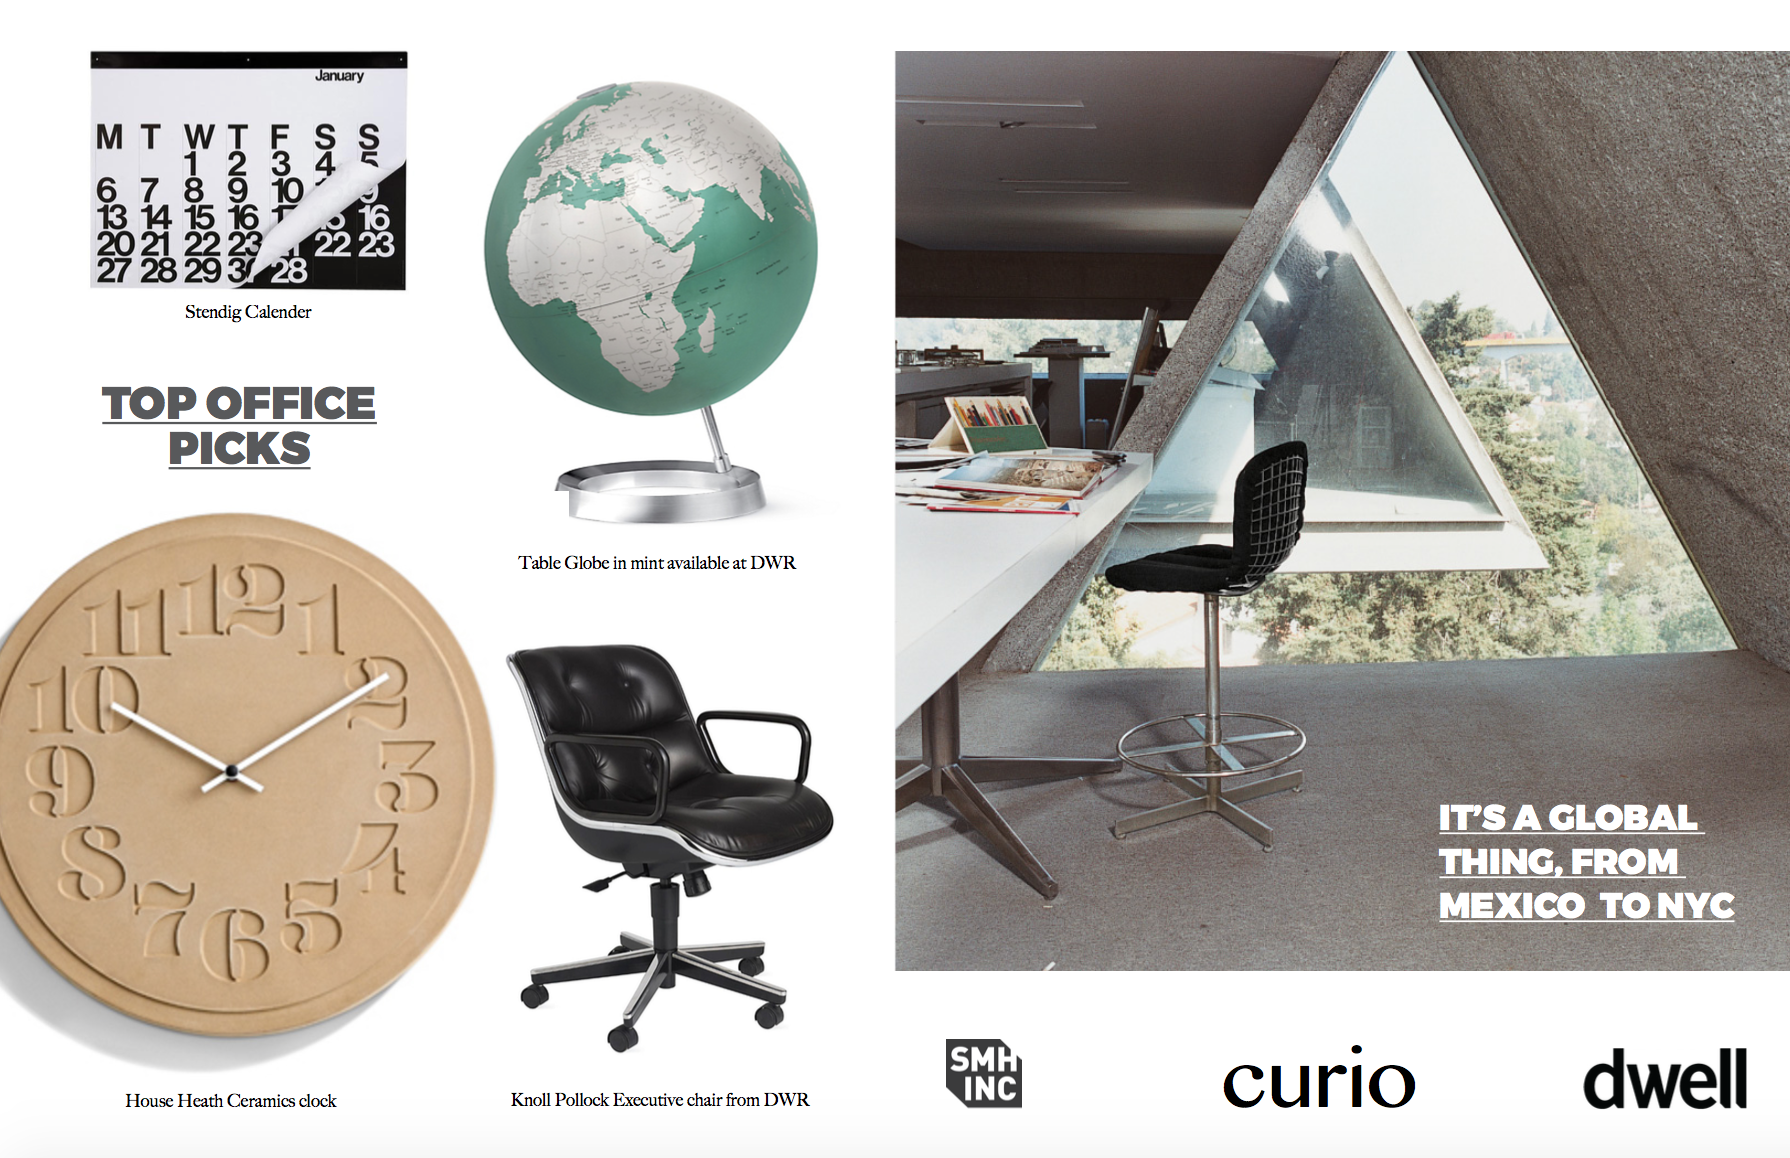 Left: SMH, Inc's  top picks for office furniture and accessories. Images courtesy of  DWR  and  Heath Ceramics  Right: Austin Hernandez's home office in Mexico. This photo originally appeared in  Hecho  in Mexico City.This image appear on  www.dwell.com